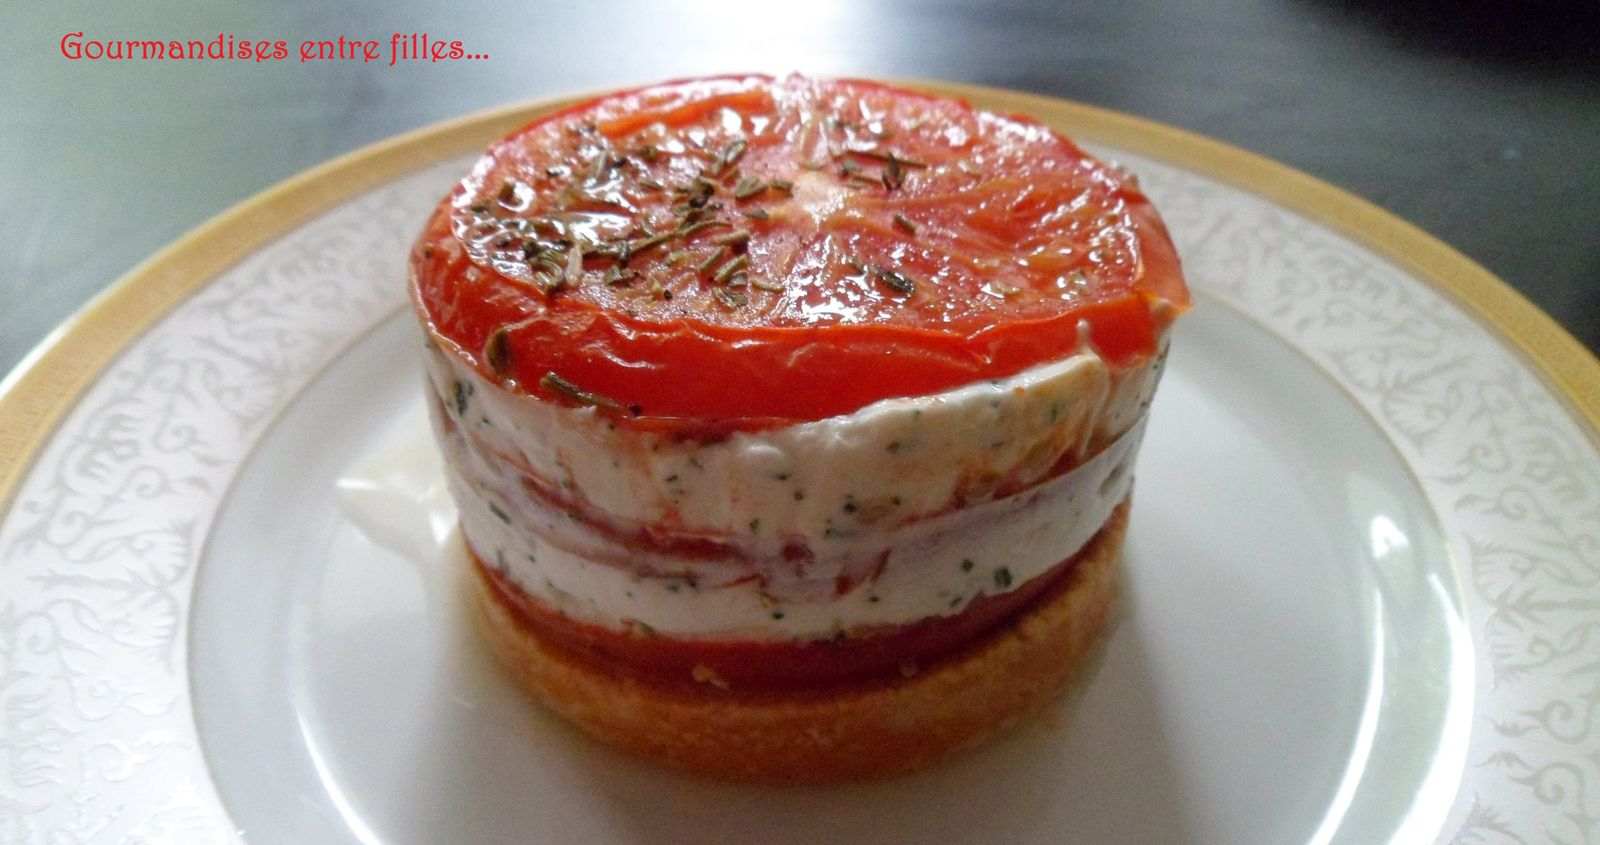 Petit cheesecake ch vre tomate gourmandises entre filles for Entree sympa facile